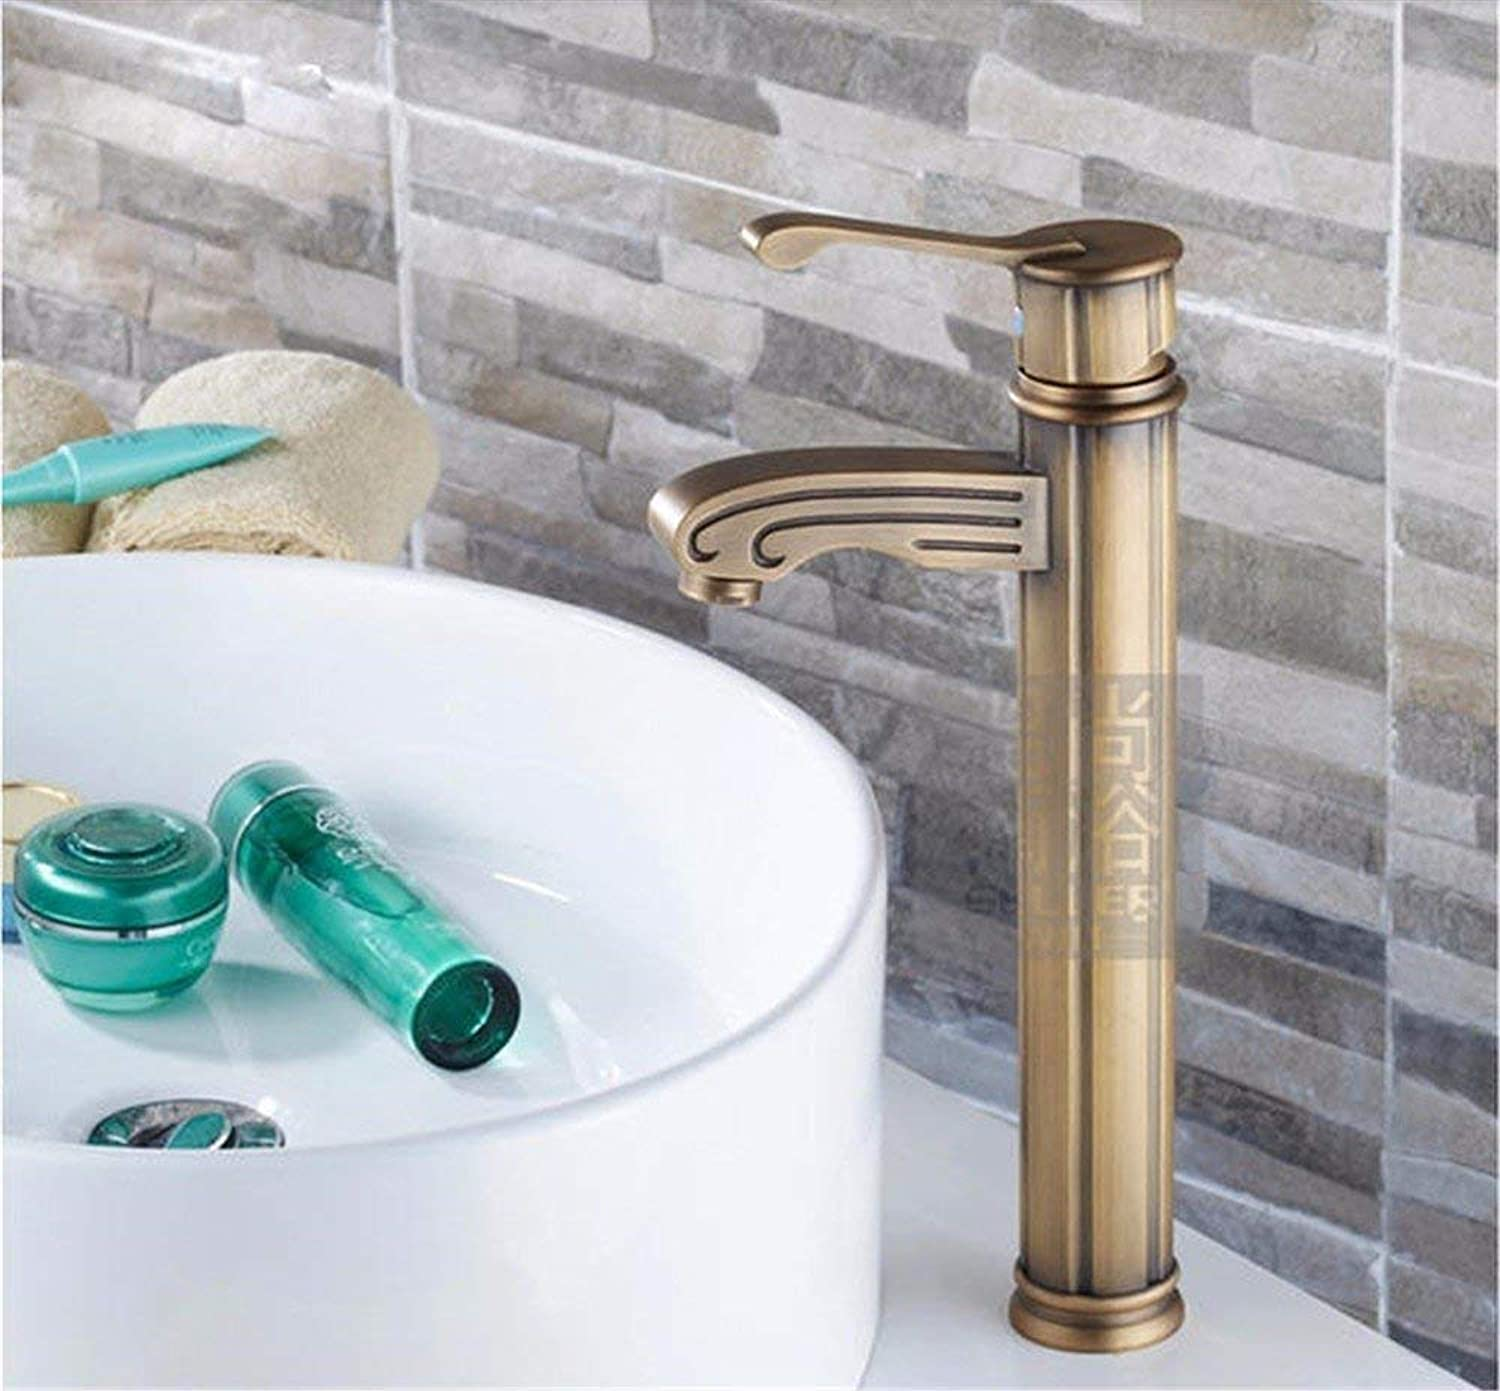 Faucet Copper Faucet, Basin Above Counter Basin Bathroom Faucet, Hot and Cold Retro Outdoor Taps (color   -, Size   -)